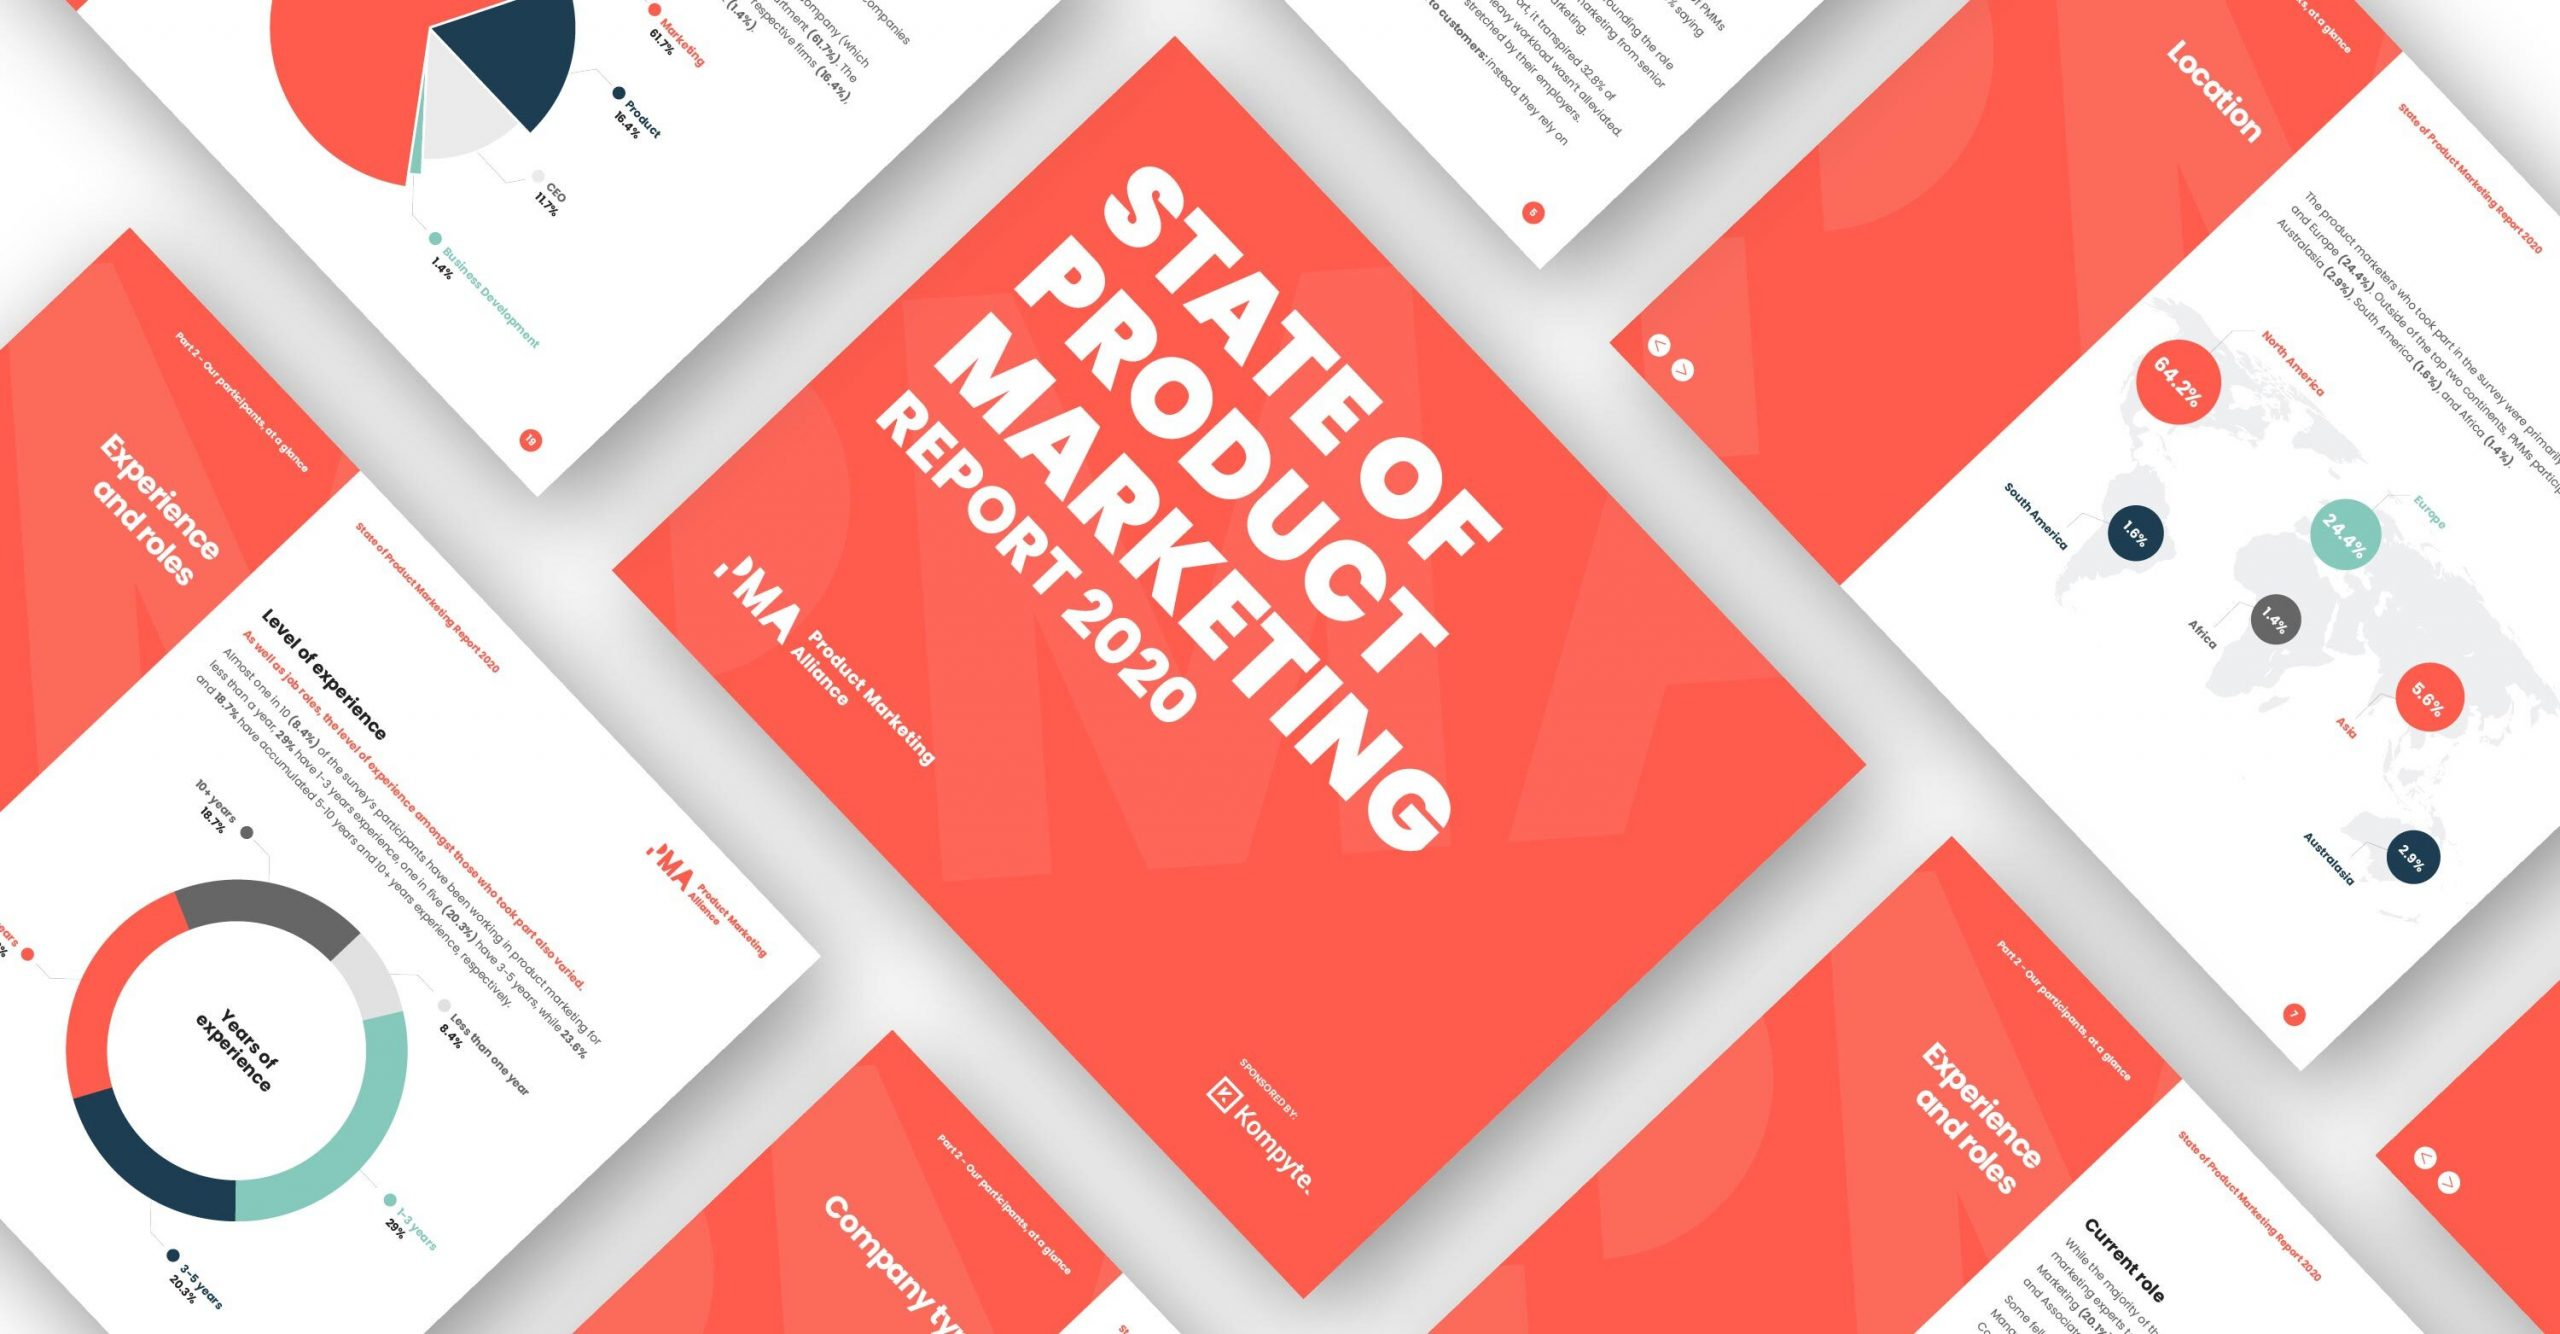 PMA releases annual 'State of Product Marketing' report